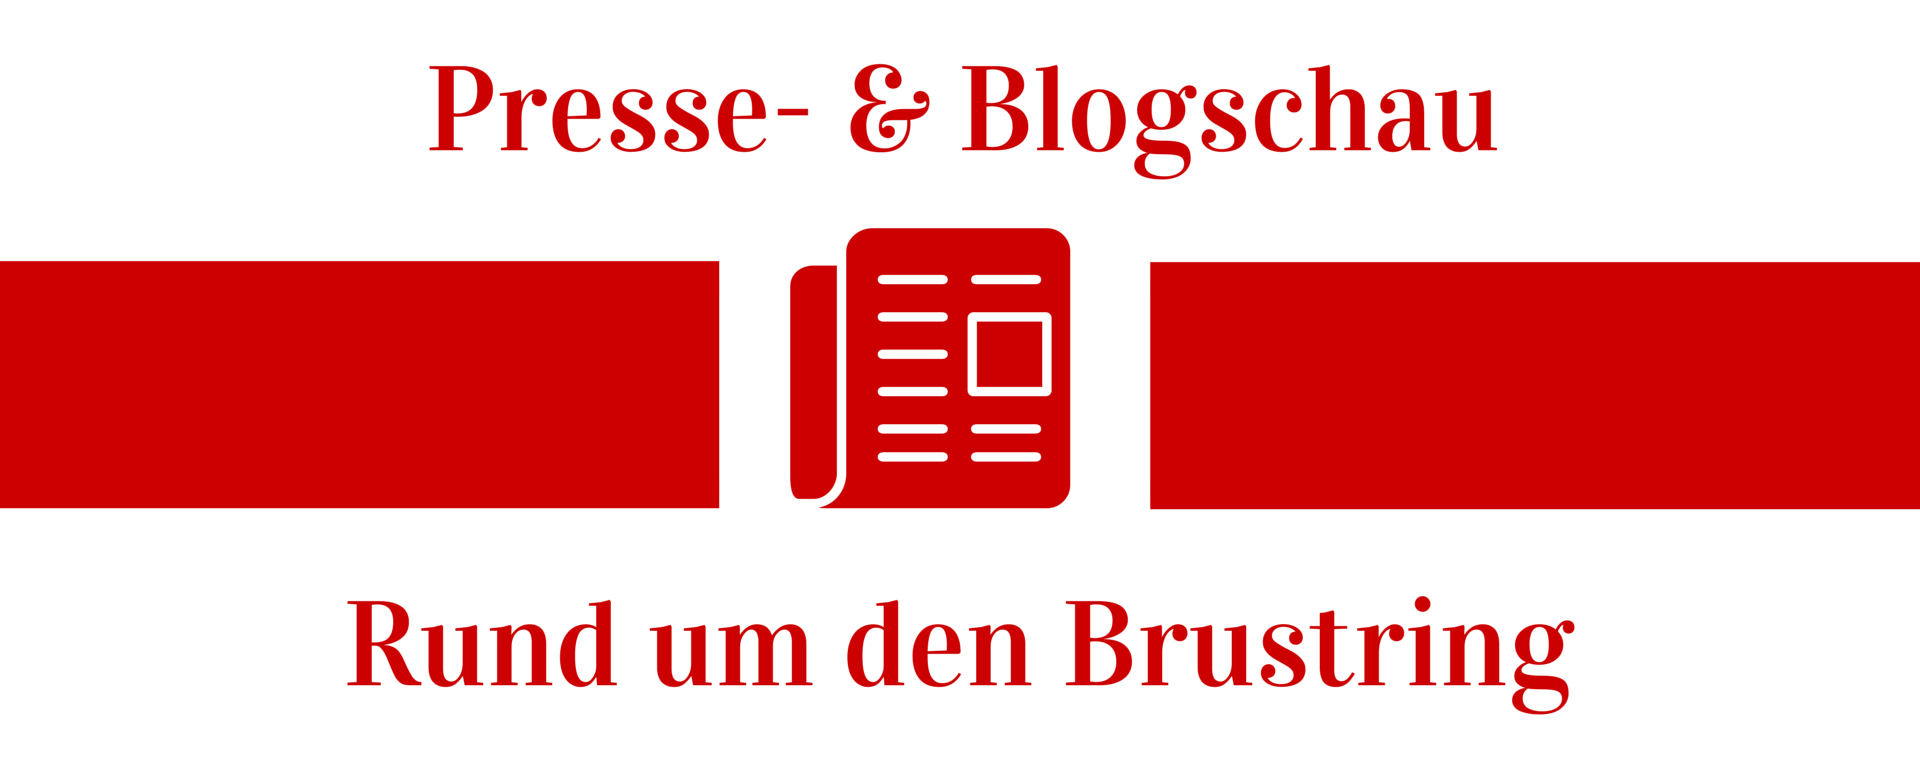 Hallo Bundesliga! – Rund um den Brustring am Freitag, 14. August 2015